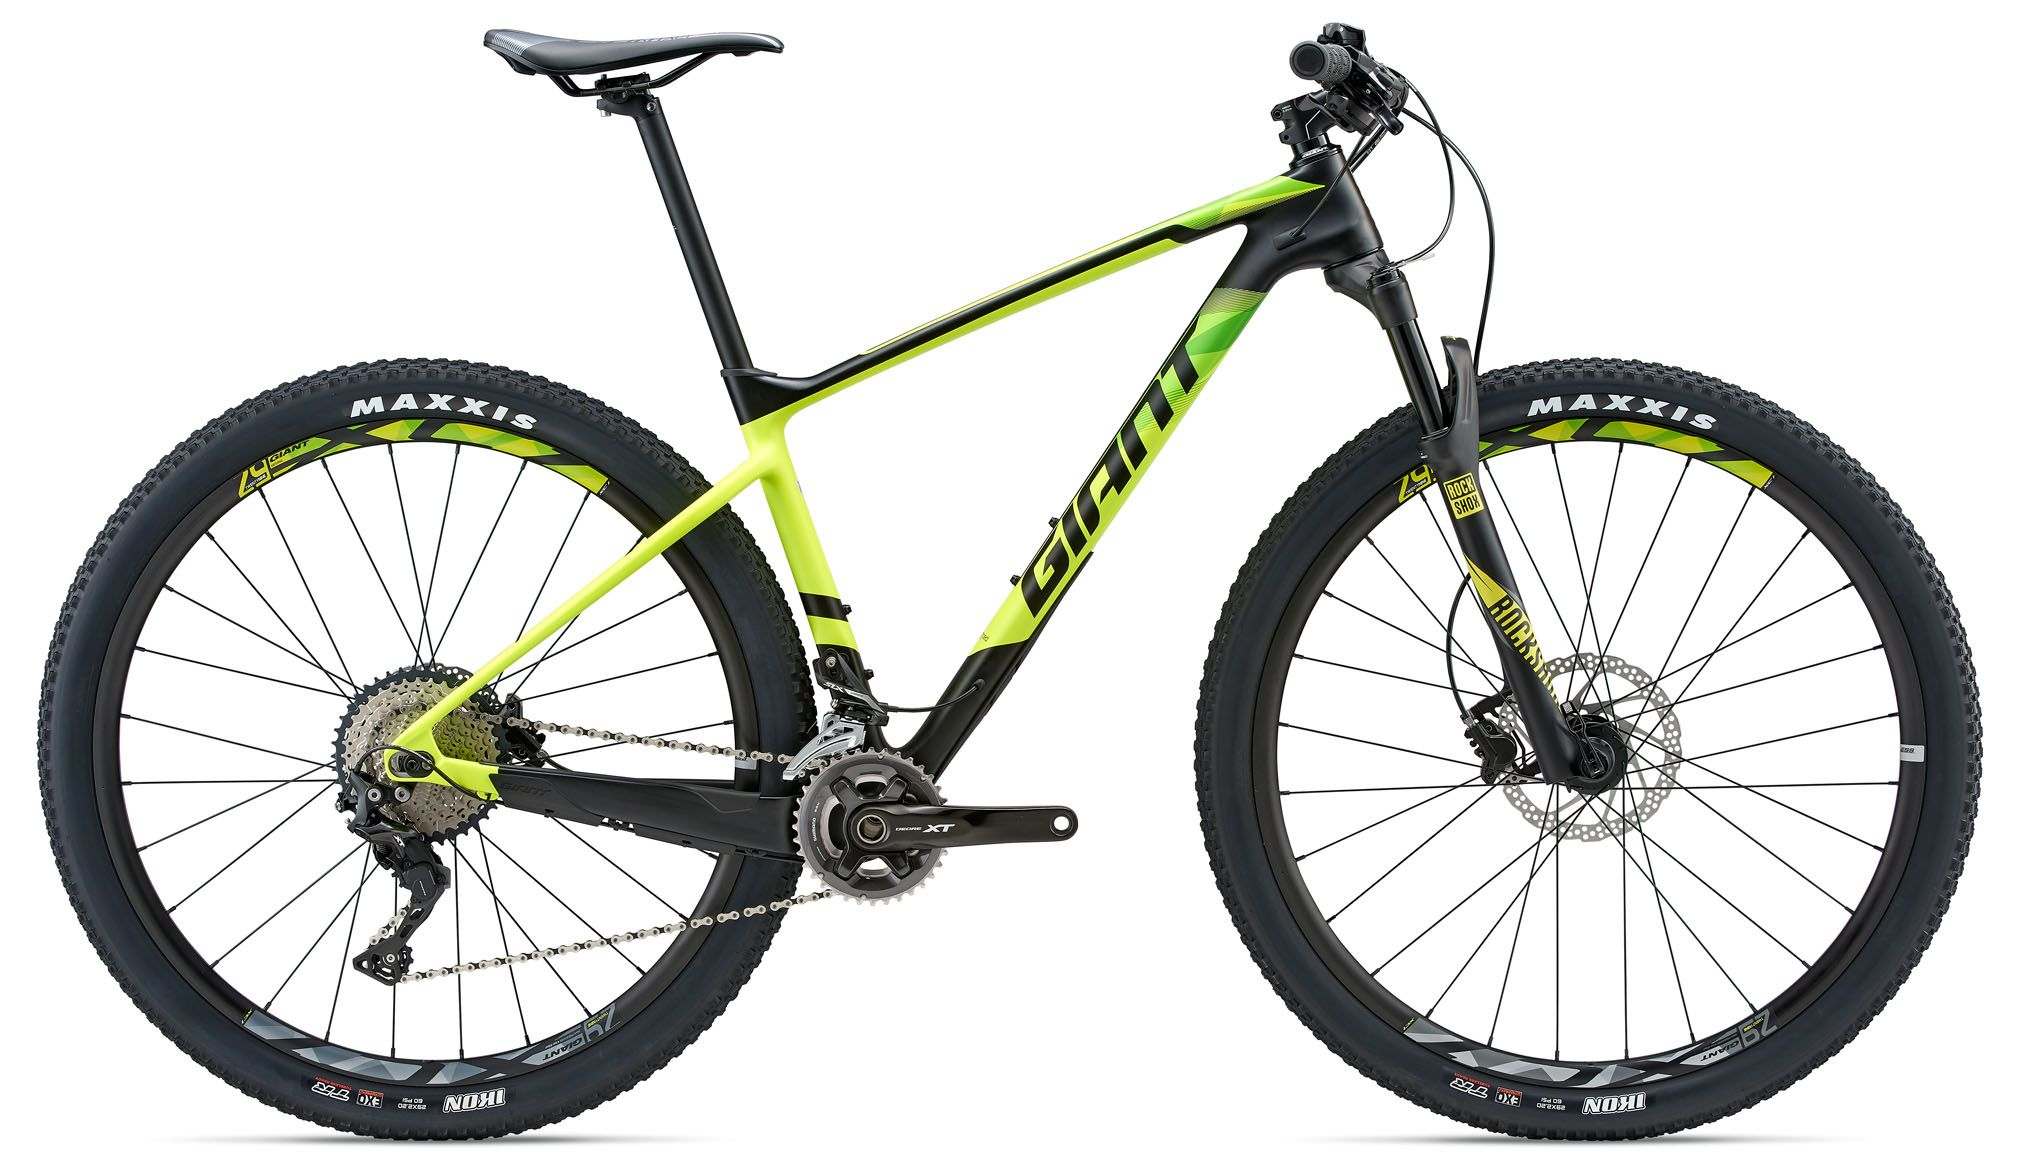 Велосипед Giant XTC Advanced 29er 2 GE 2018 велосипед giant anthem advanced 27 5 2 2016